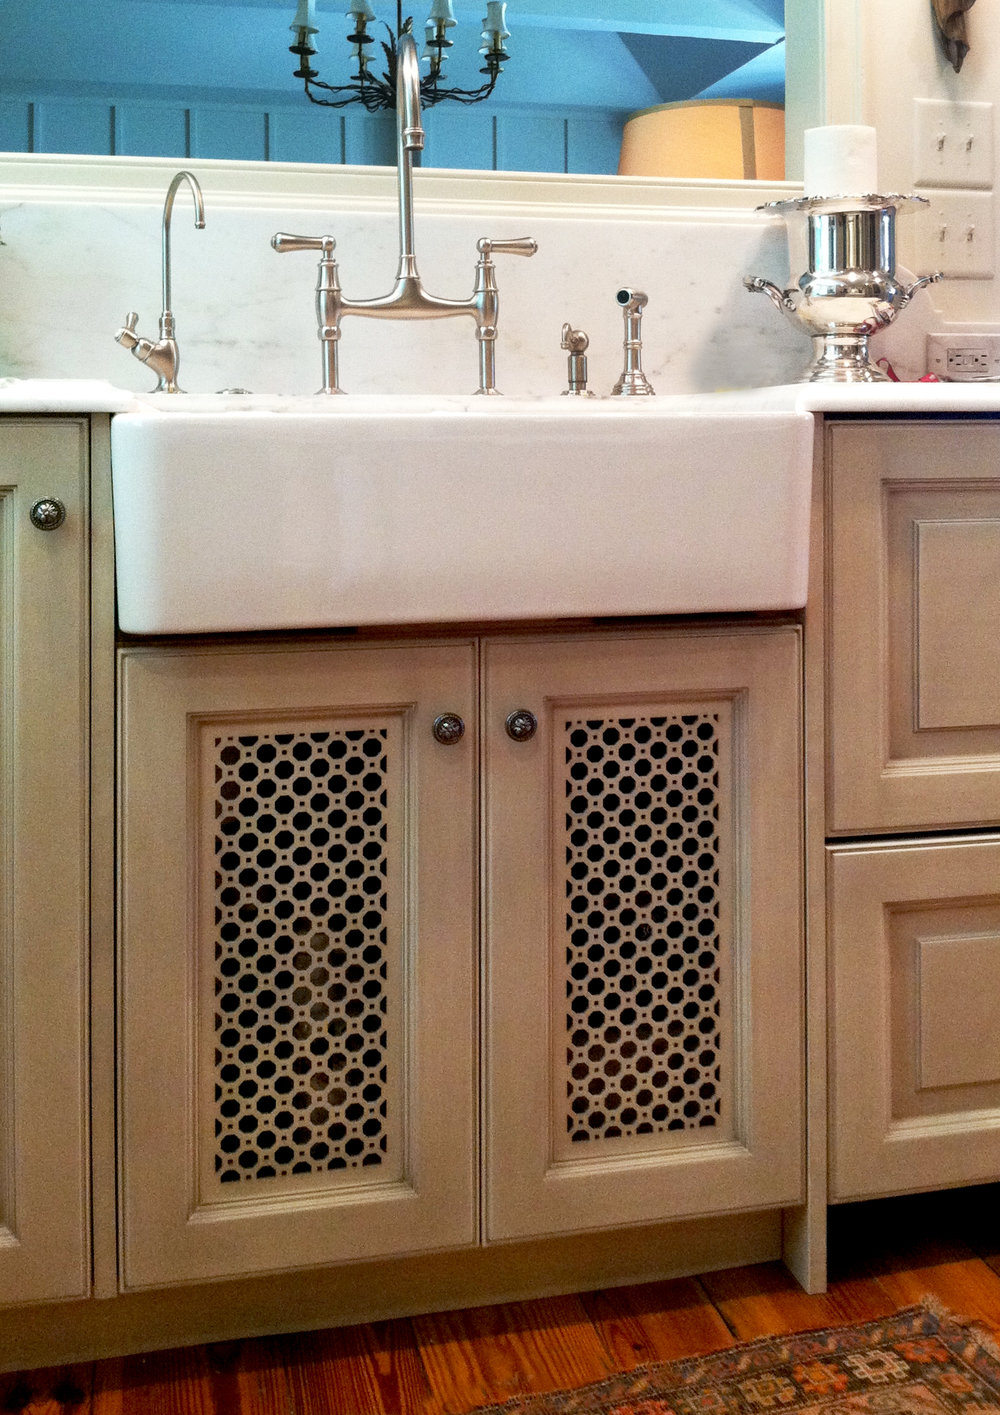 Design Galleria  Custom kitchen cabinet lattice pattern